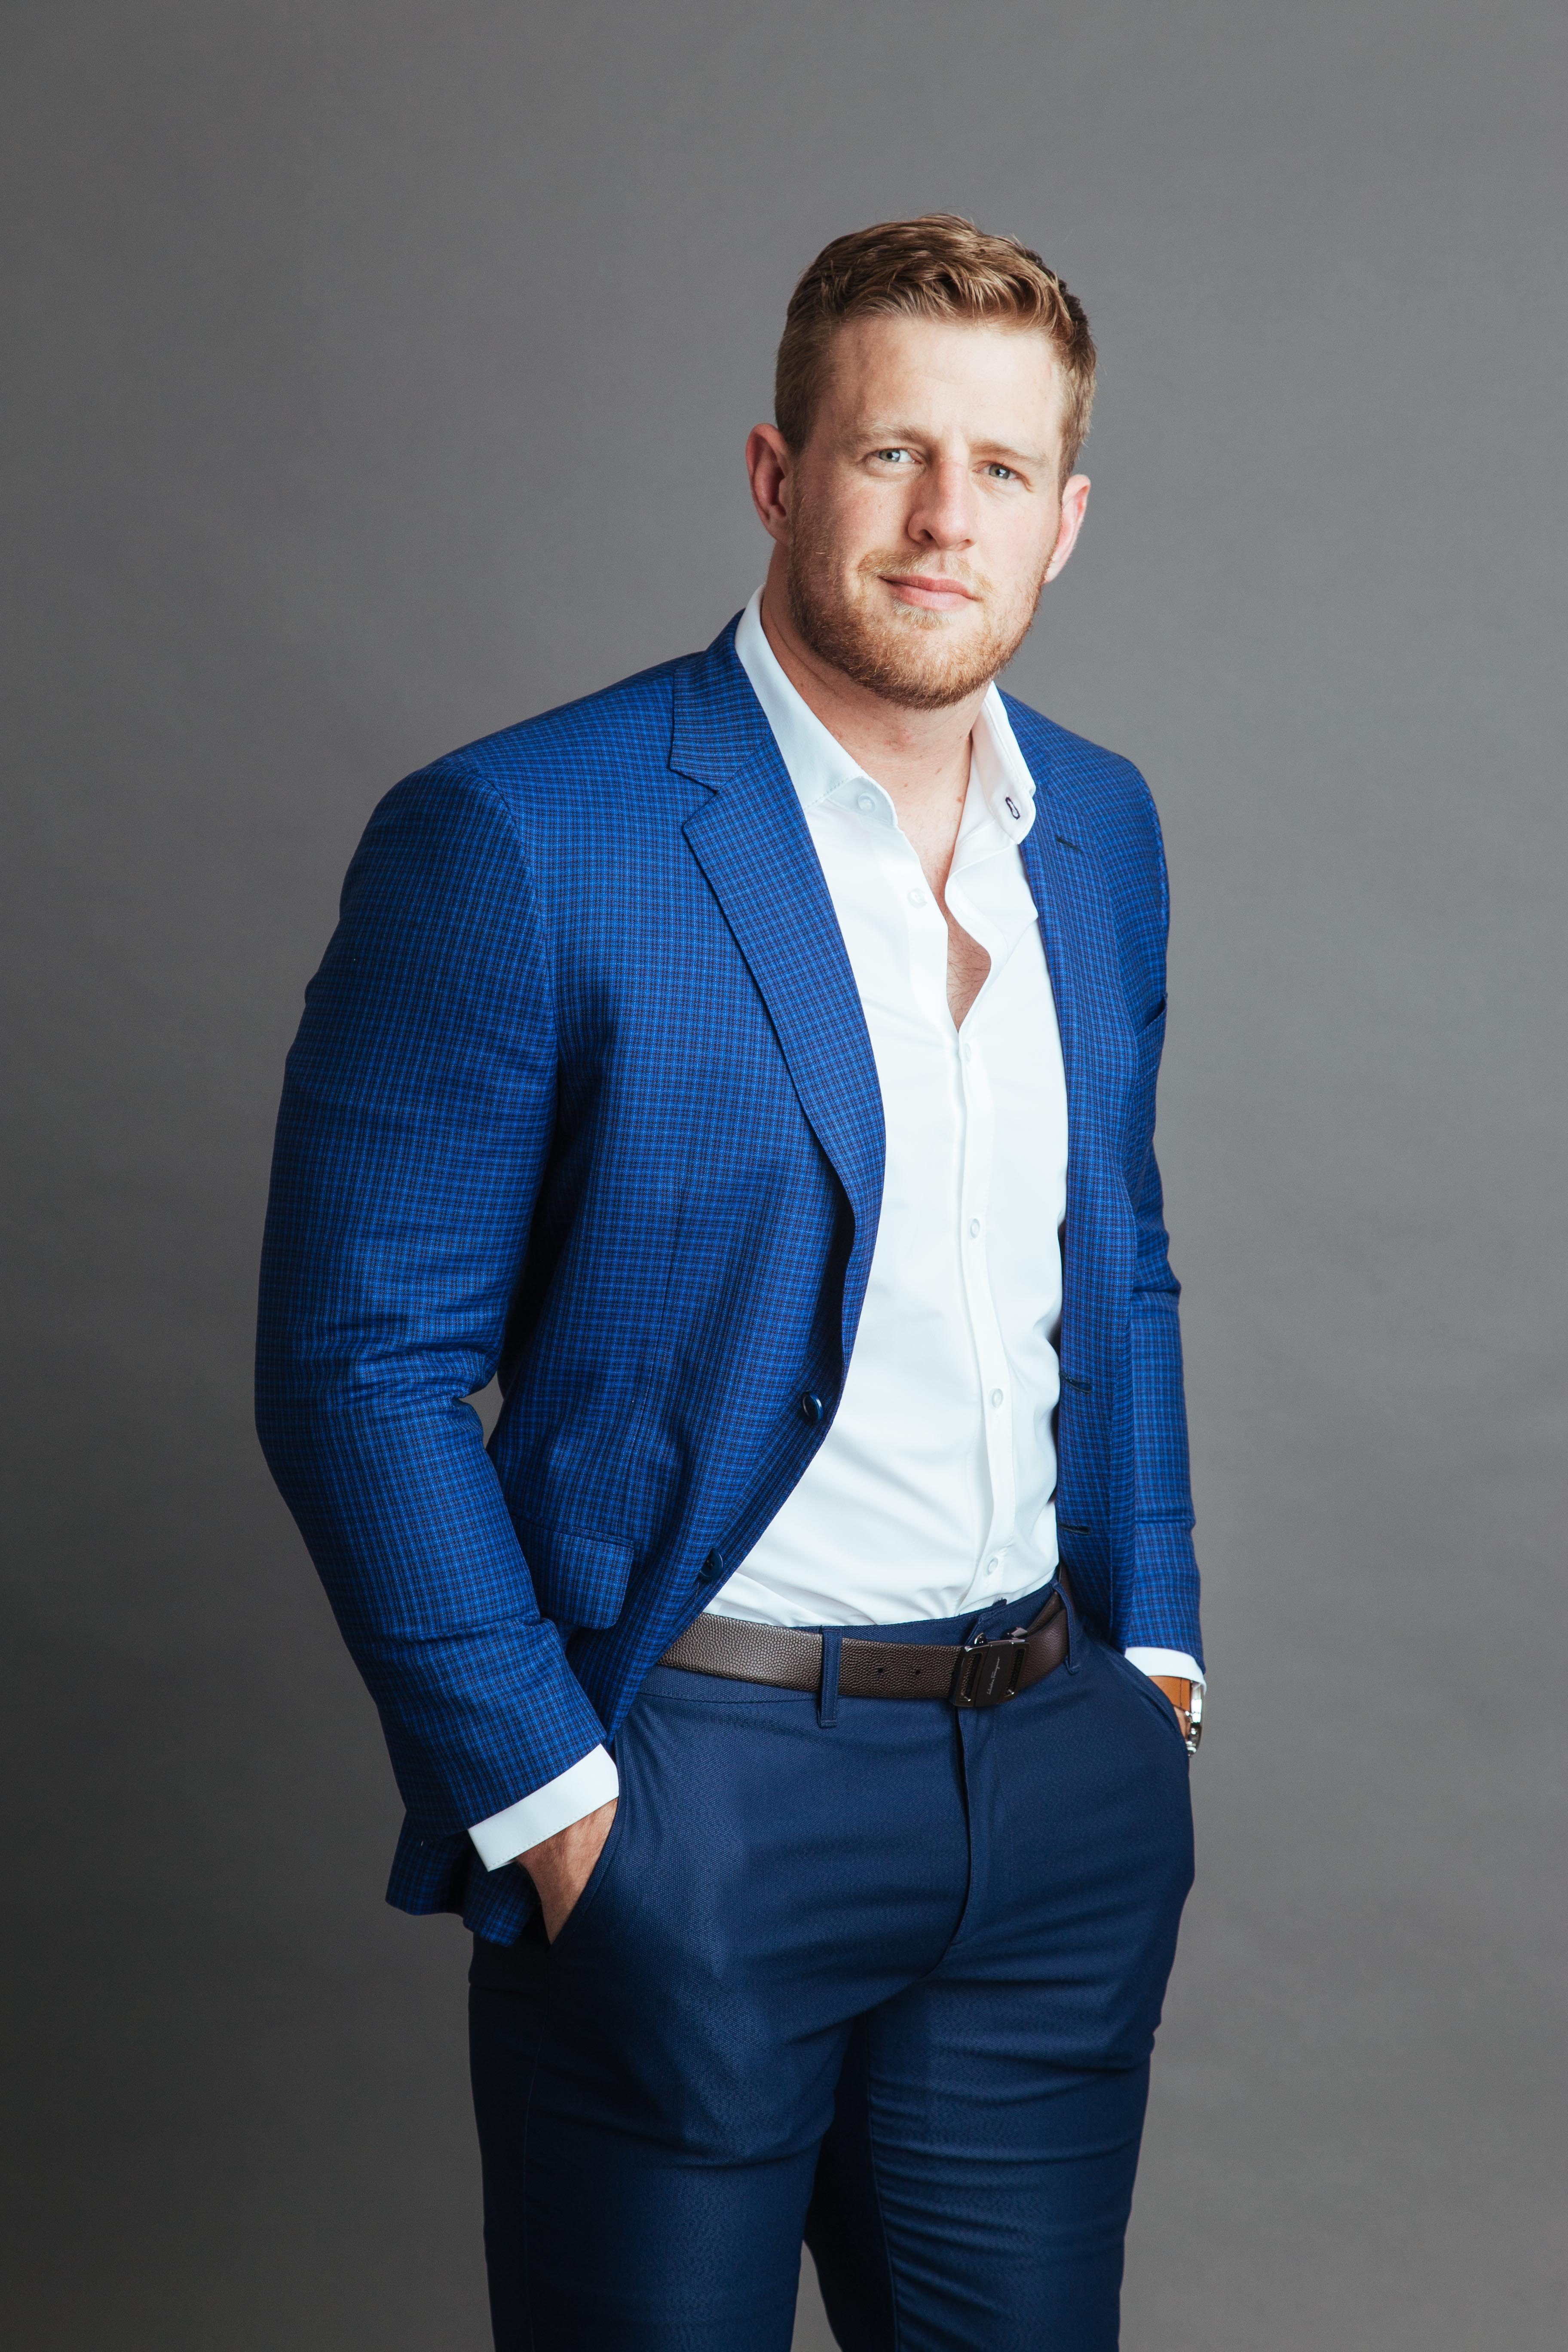 Jj Watt A Powerhouse On And Off The Field To Be Commencement Speaker